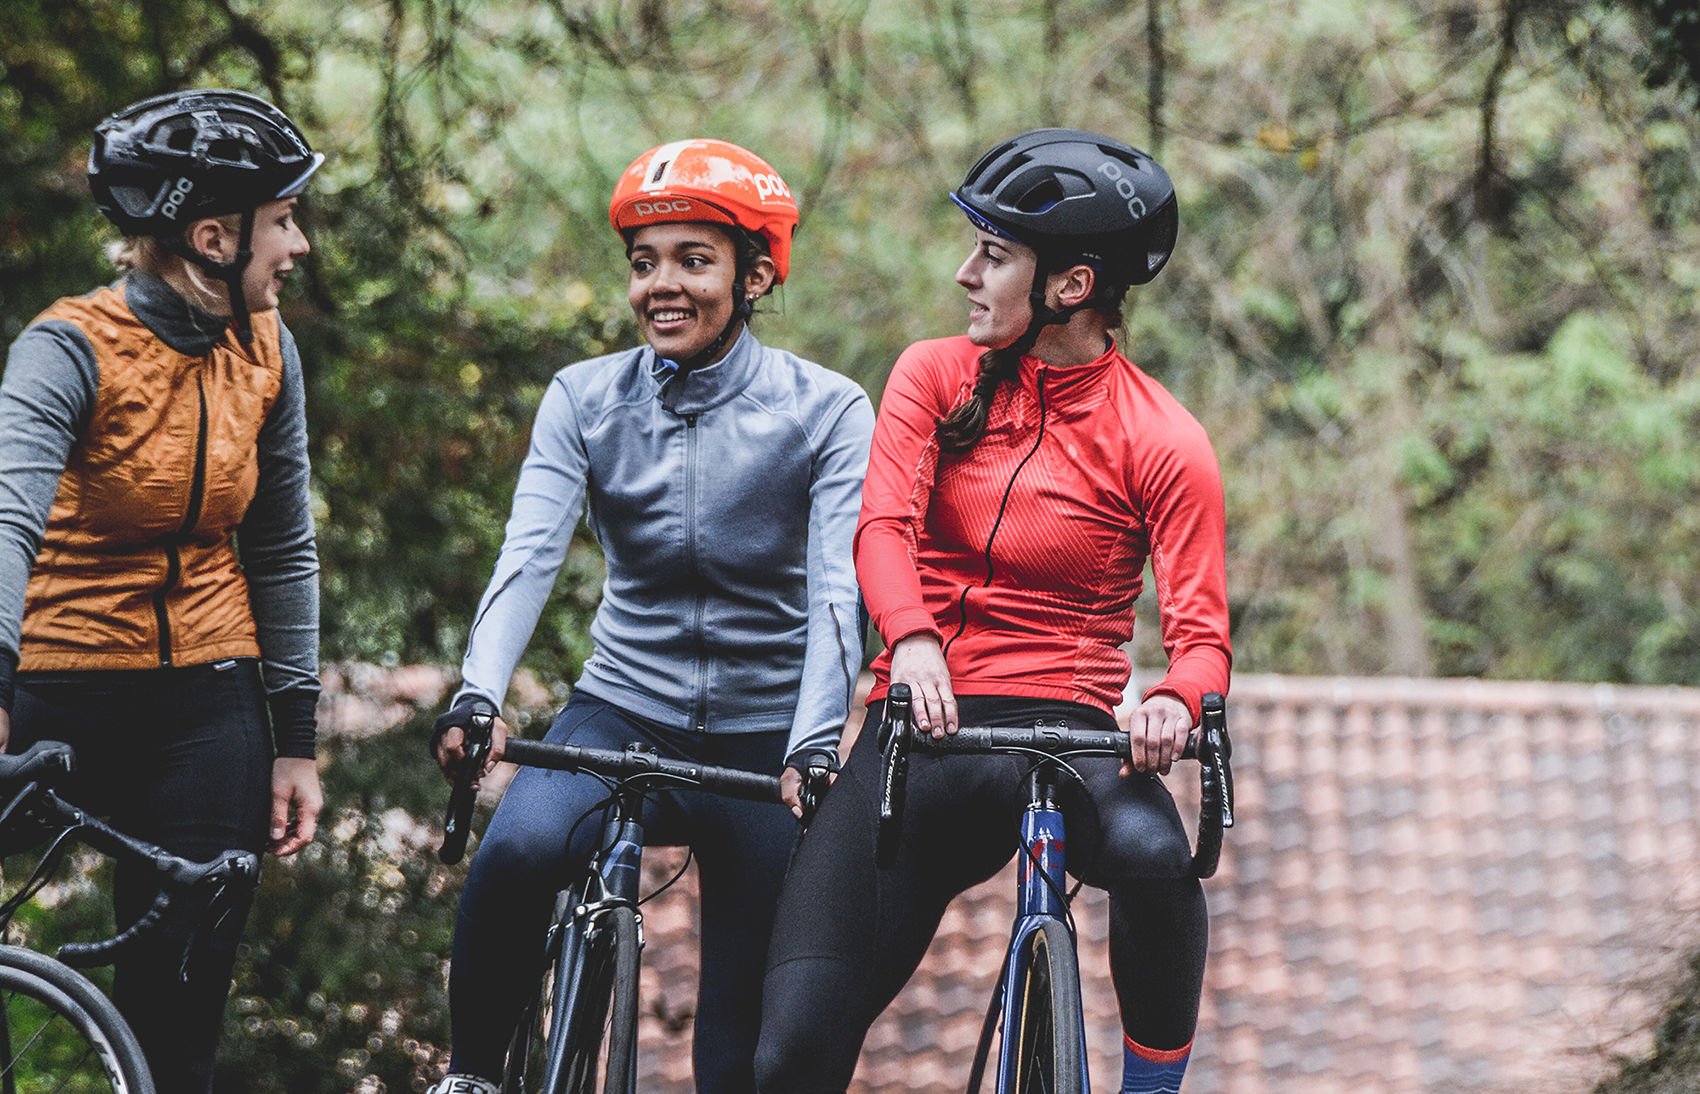 Having an active outdoor commute packs some big benefits of its own